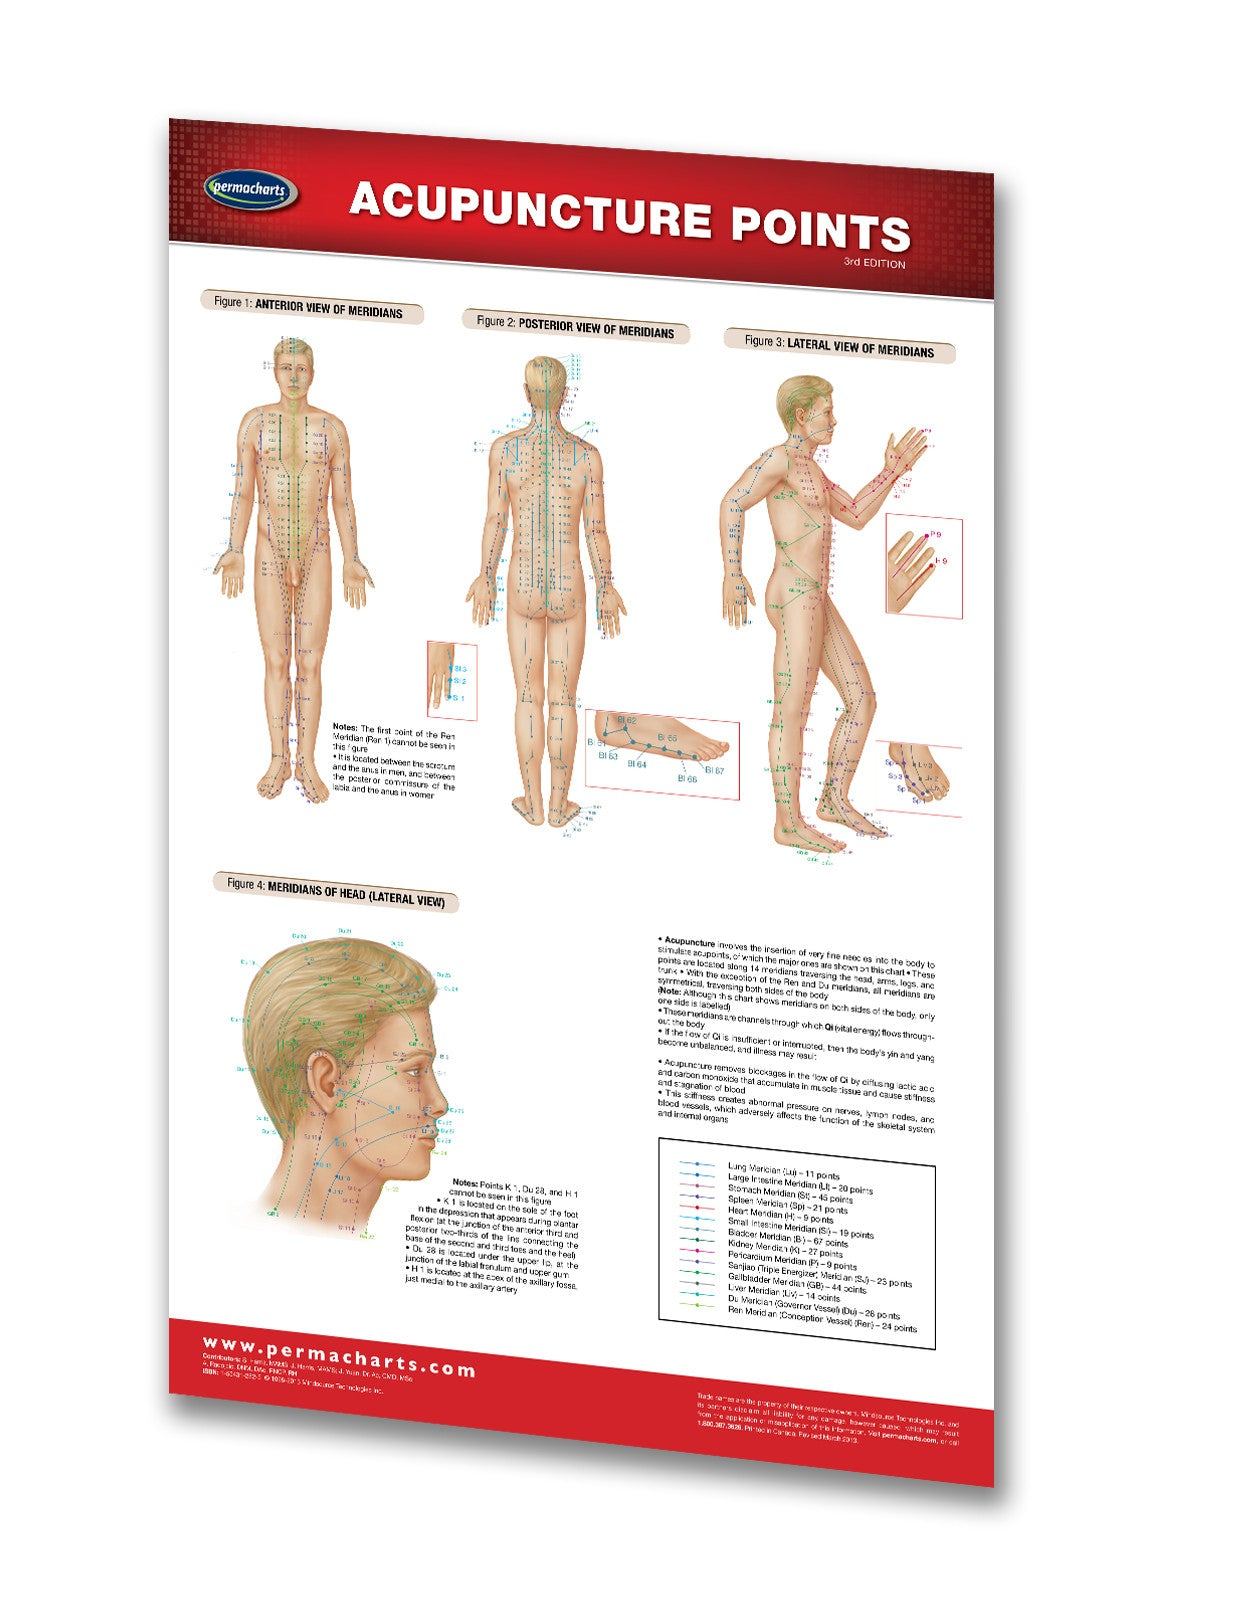 Medical Posters - Anatomy Posters - Laminated Wall Posters